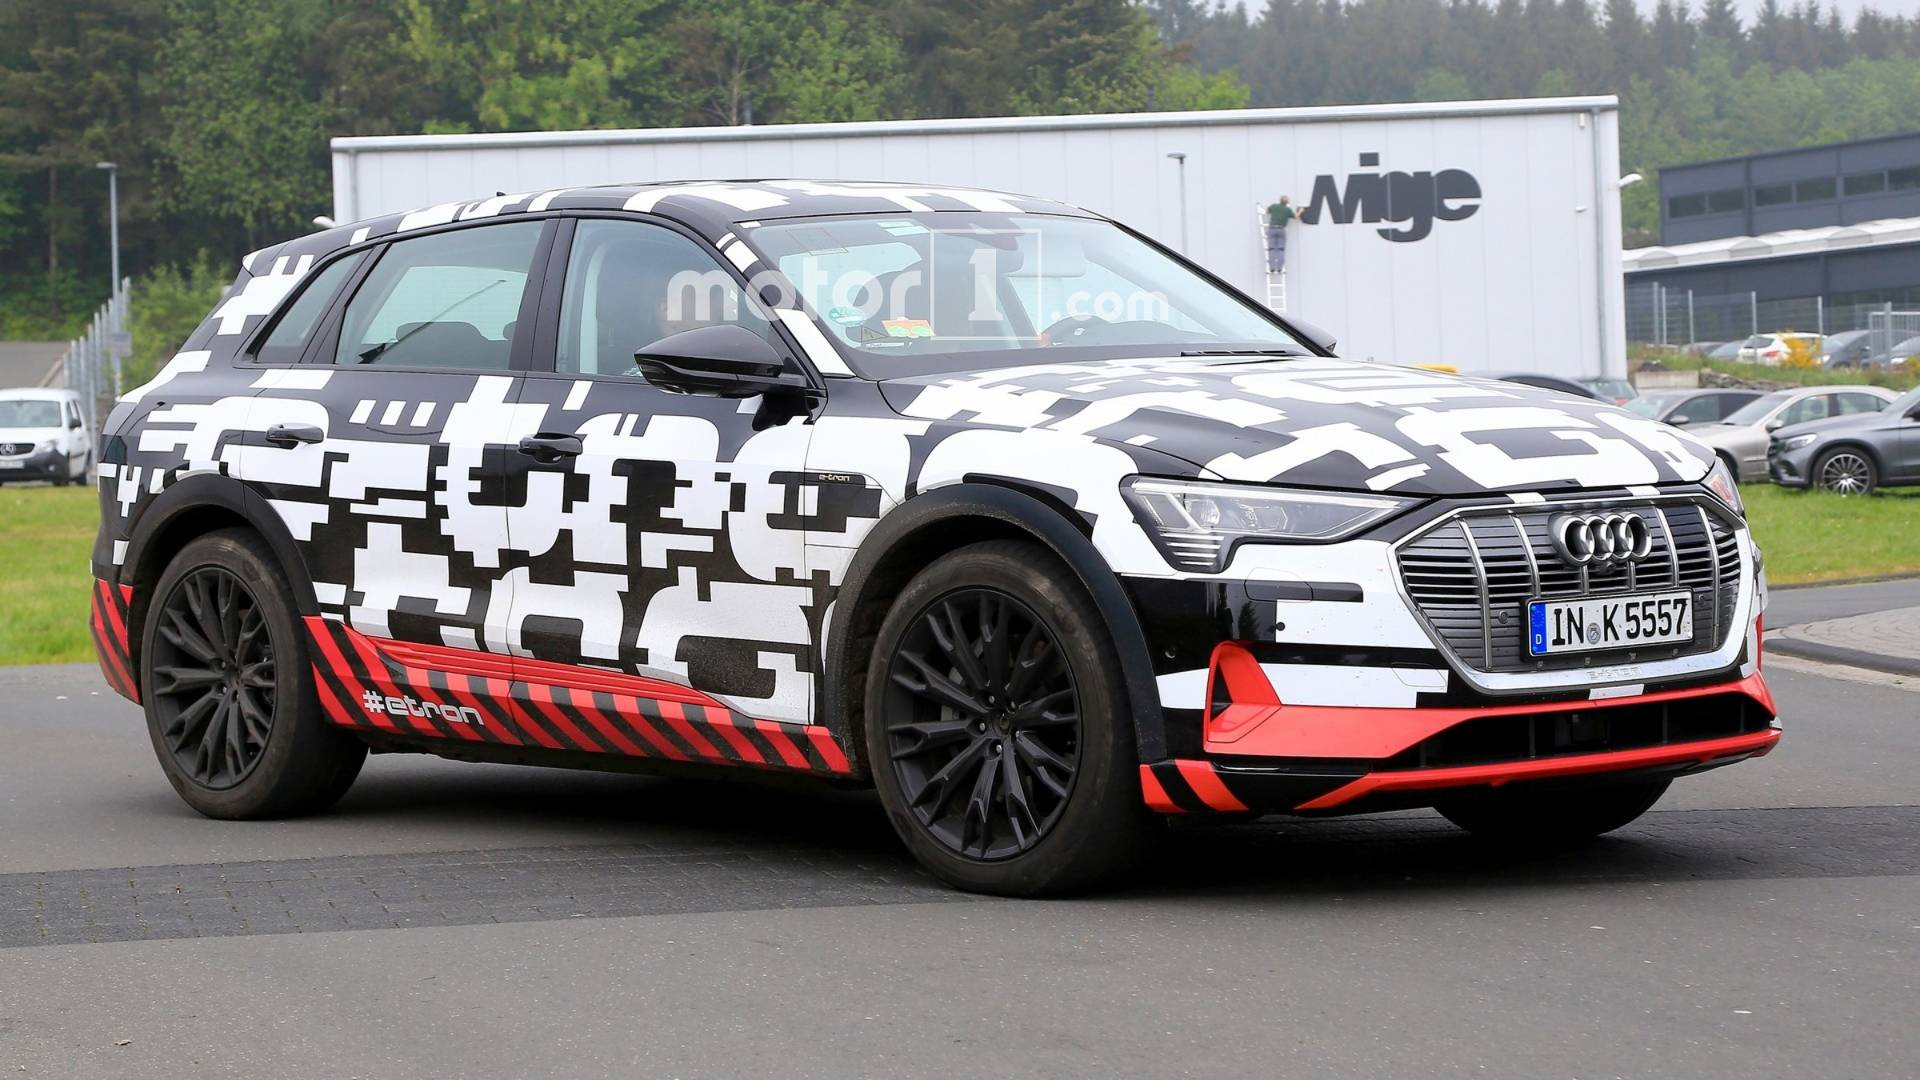 audi-e-tro​n-spy-phot​o-may-2018